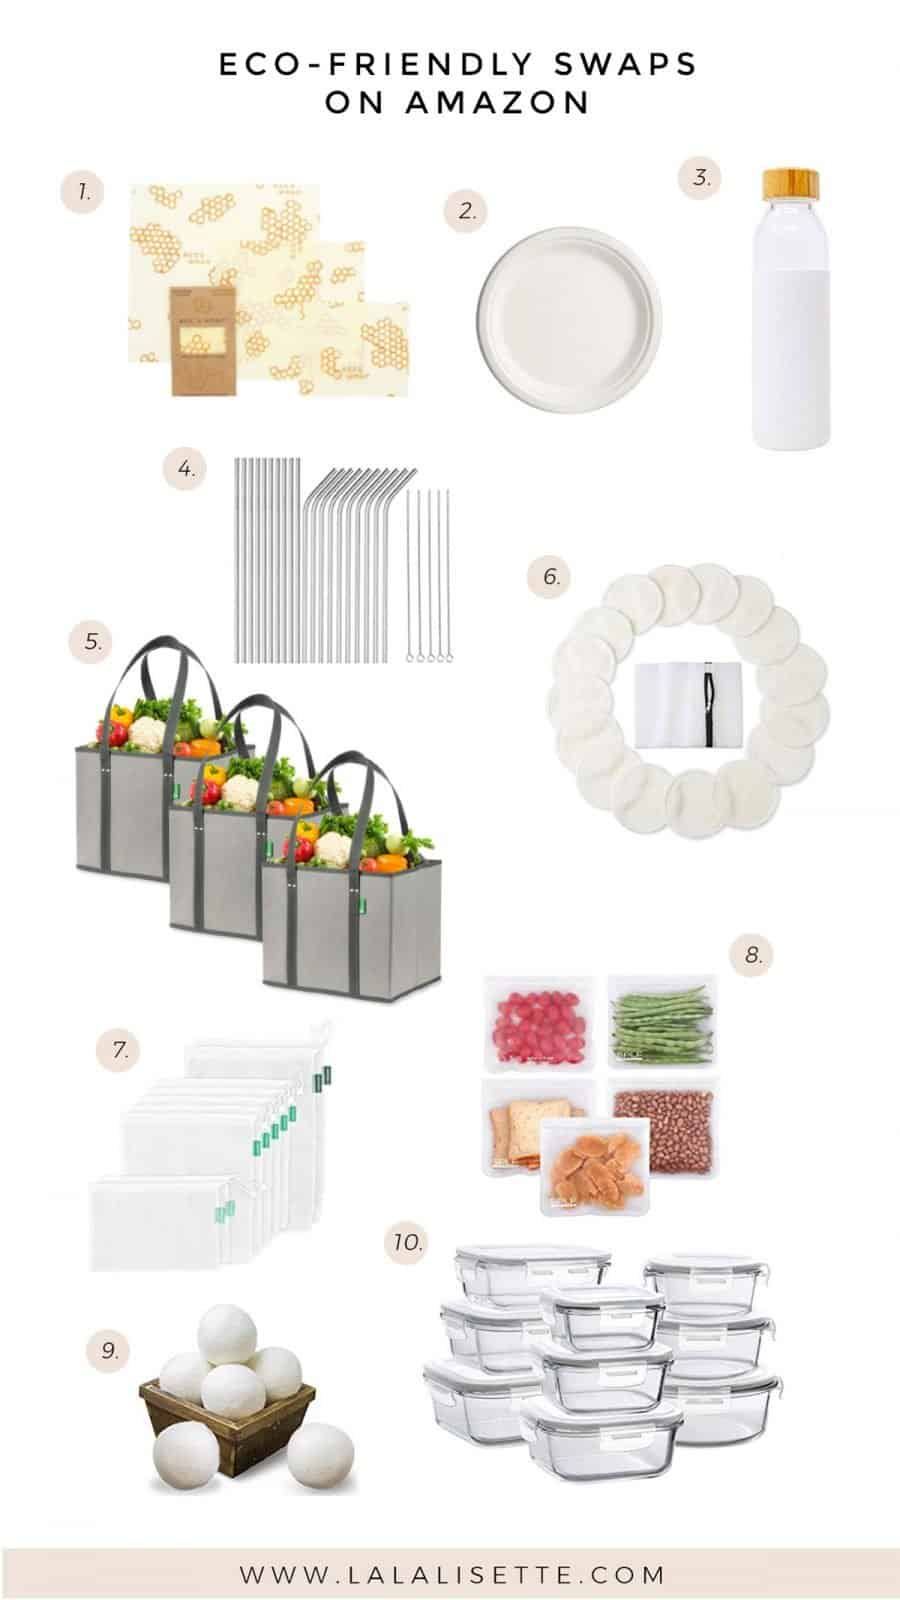 eco-friendly products on Amazon